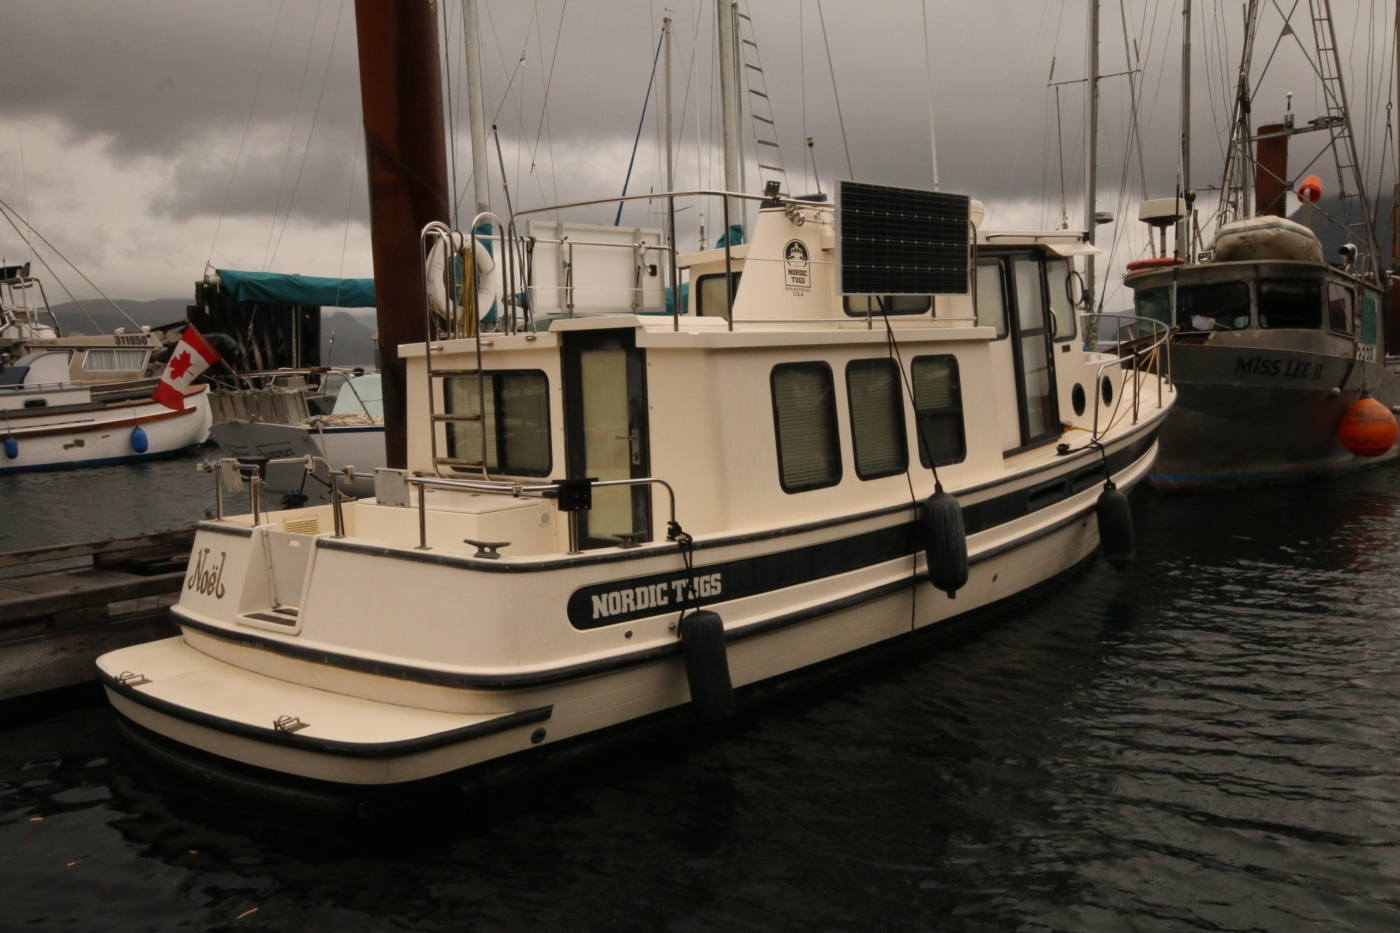 1999 Nordic Tugs 32, Starboard Side: note Solar Panels